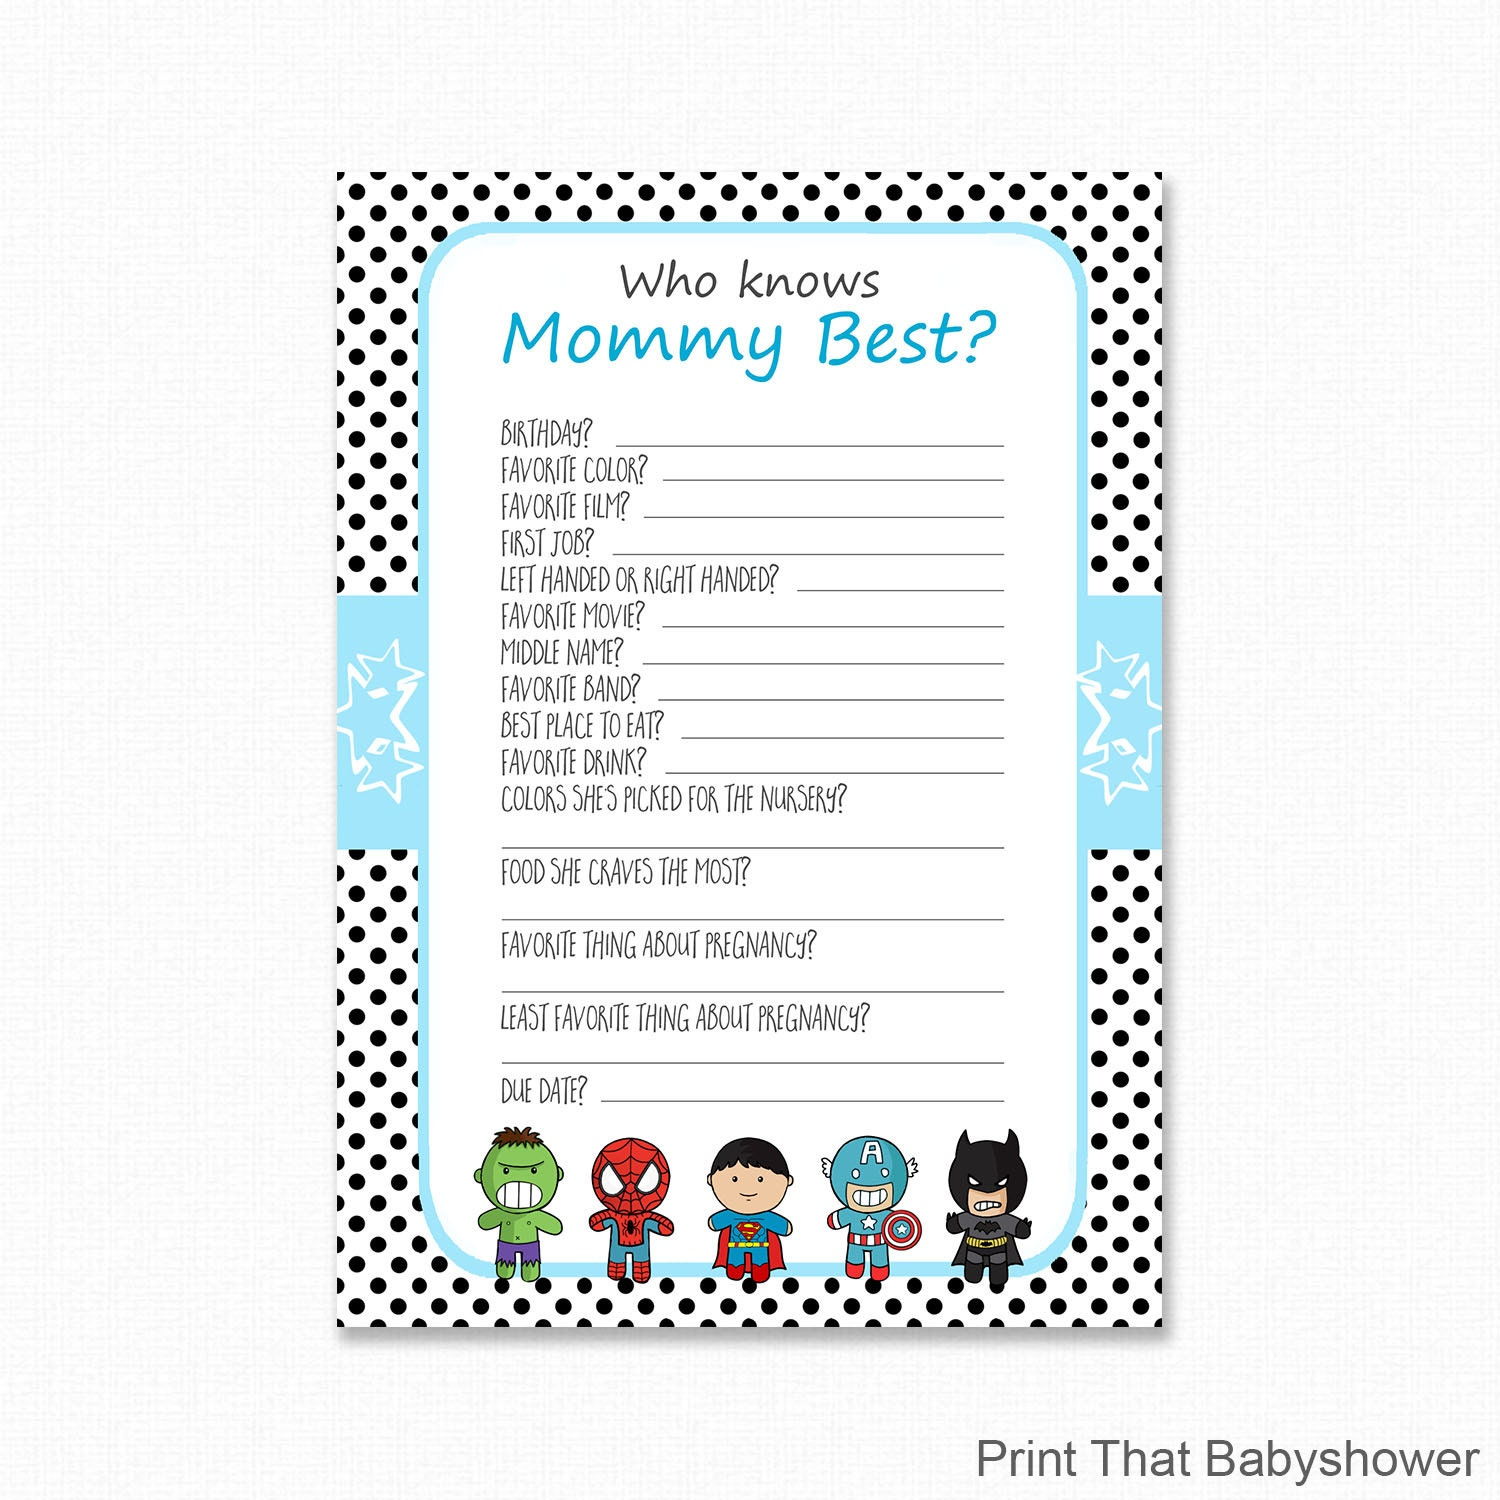 It's just a photo of Simplicity Who Knows Mommy Best Free Printable